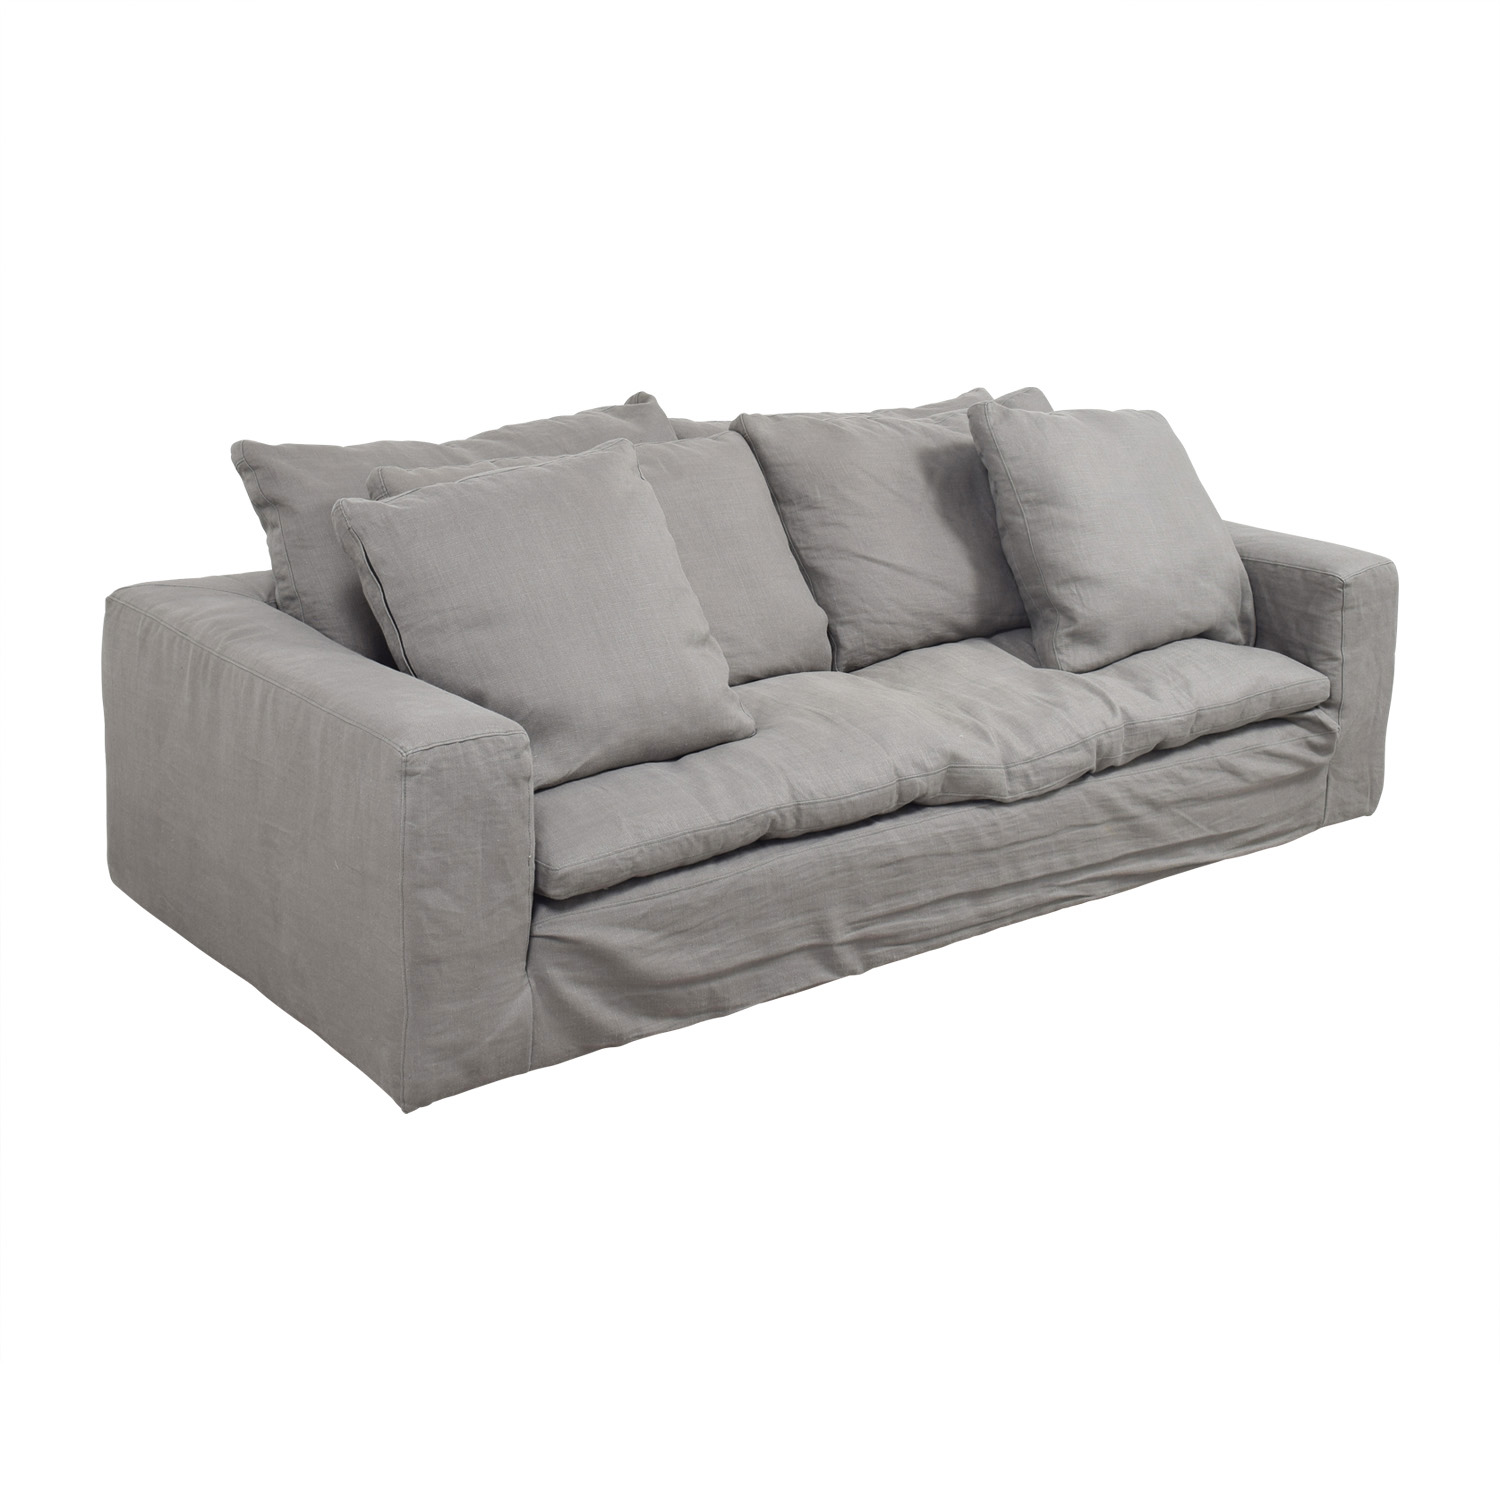 82 off restoration hardware restoration hardware grey for Restoration hardware sectional sofa sale